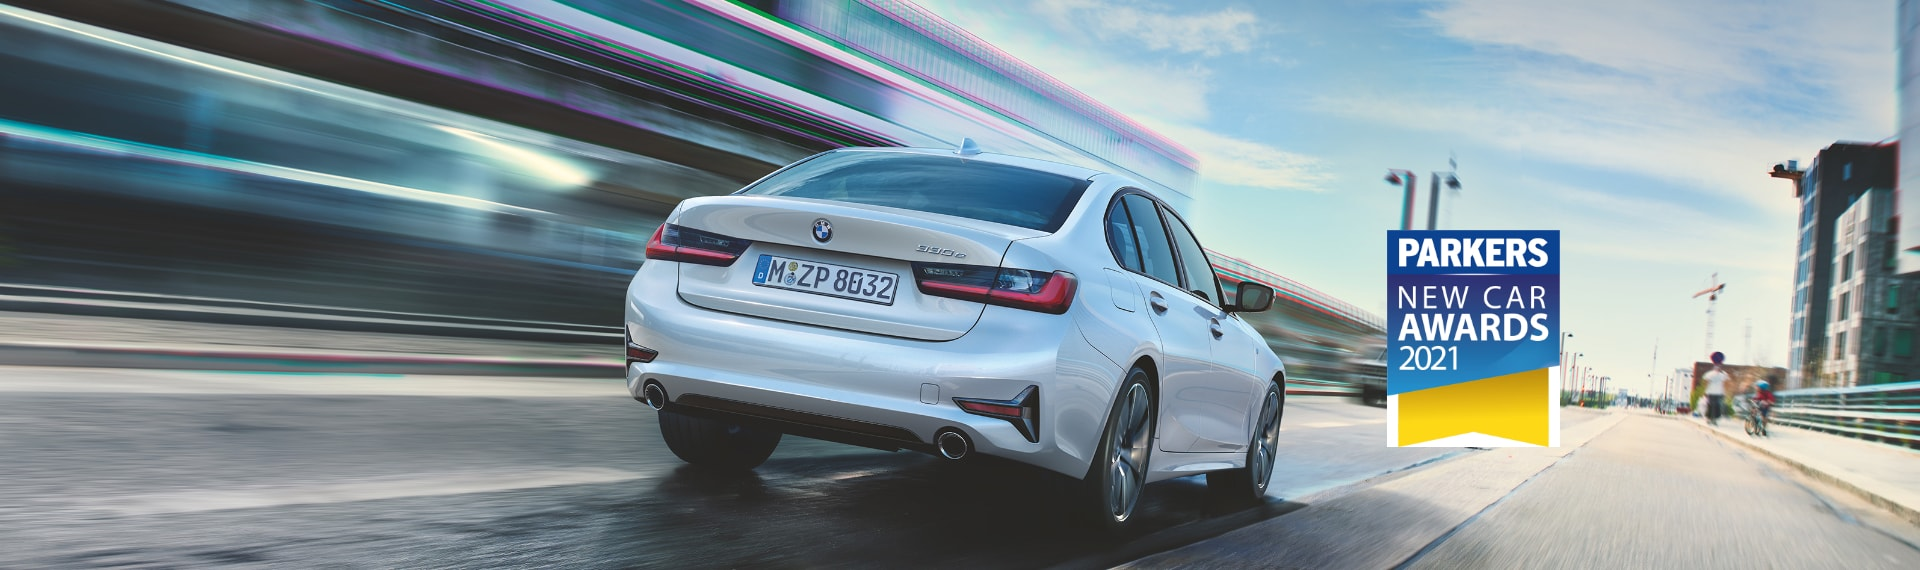 Rear image of BMW 3 Series Plug-in Hybrid